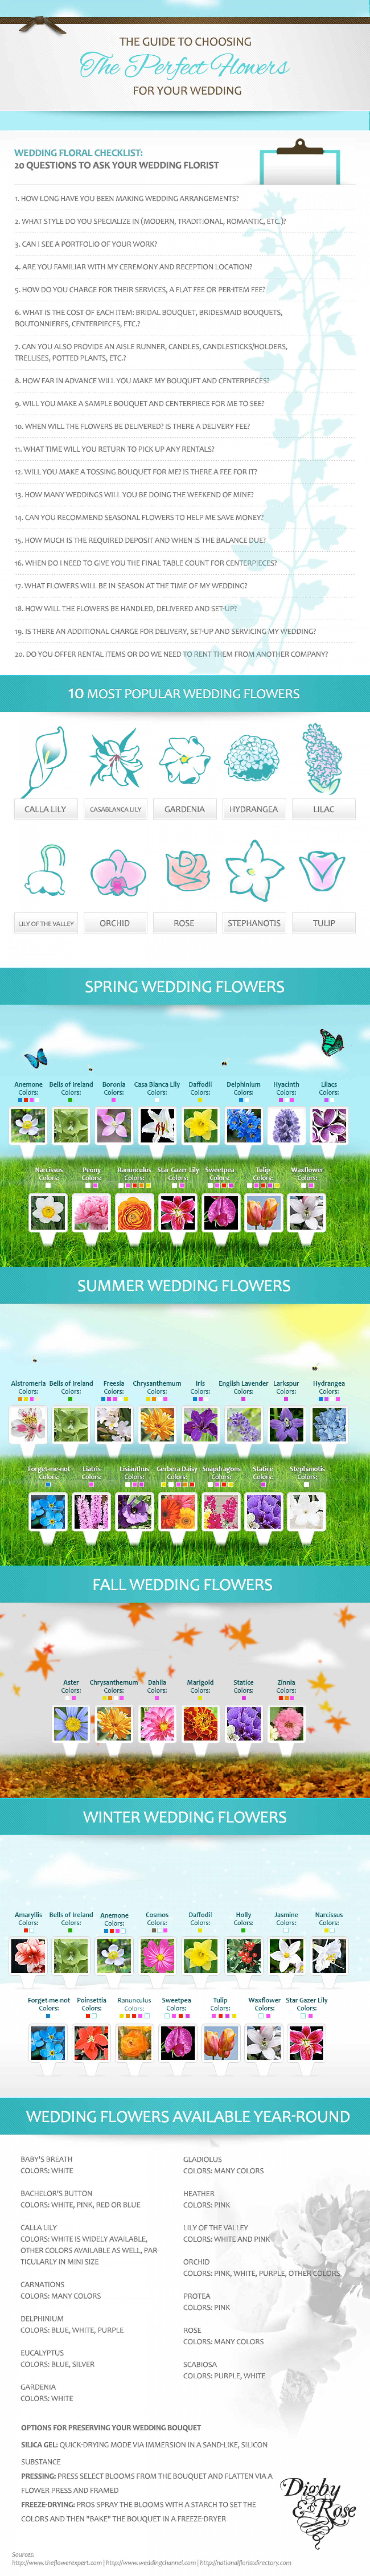 Guide To Choosing The Perfect Wedding Flowers Infographic